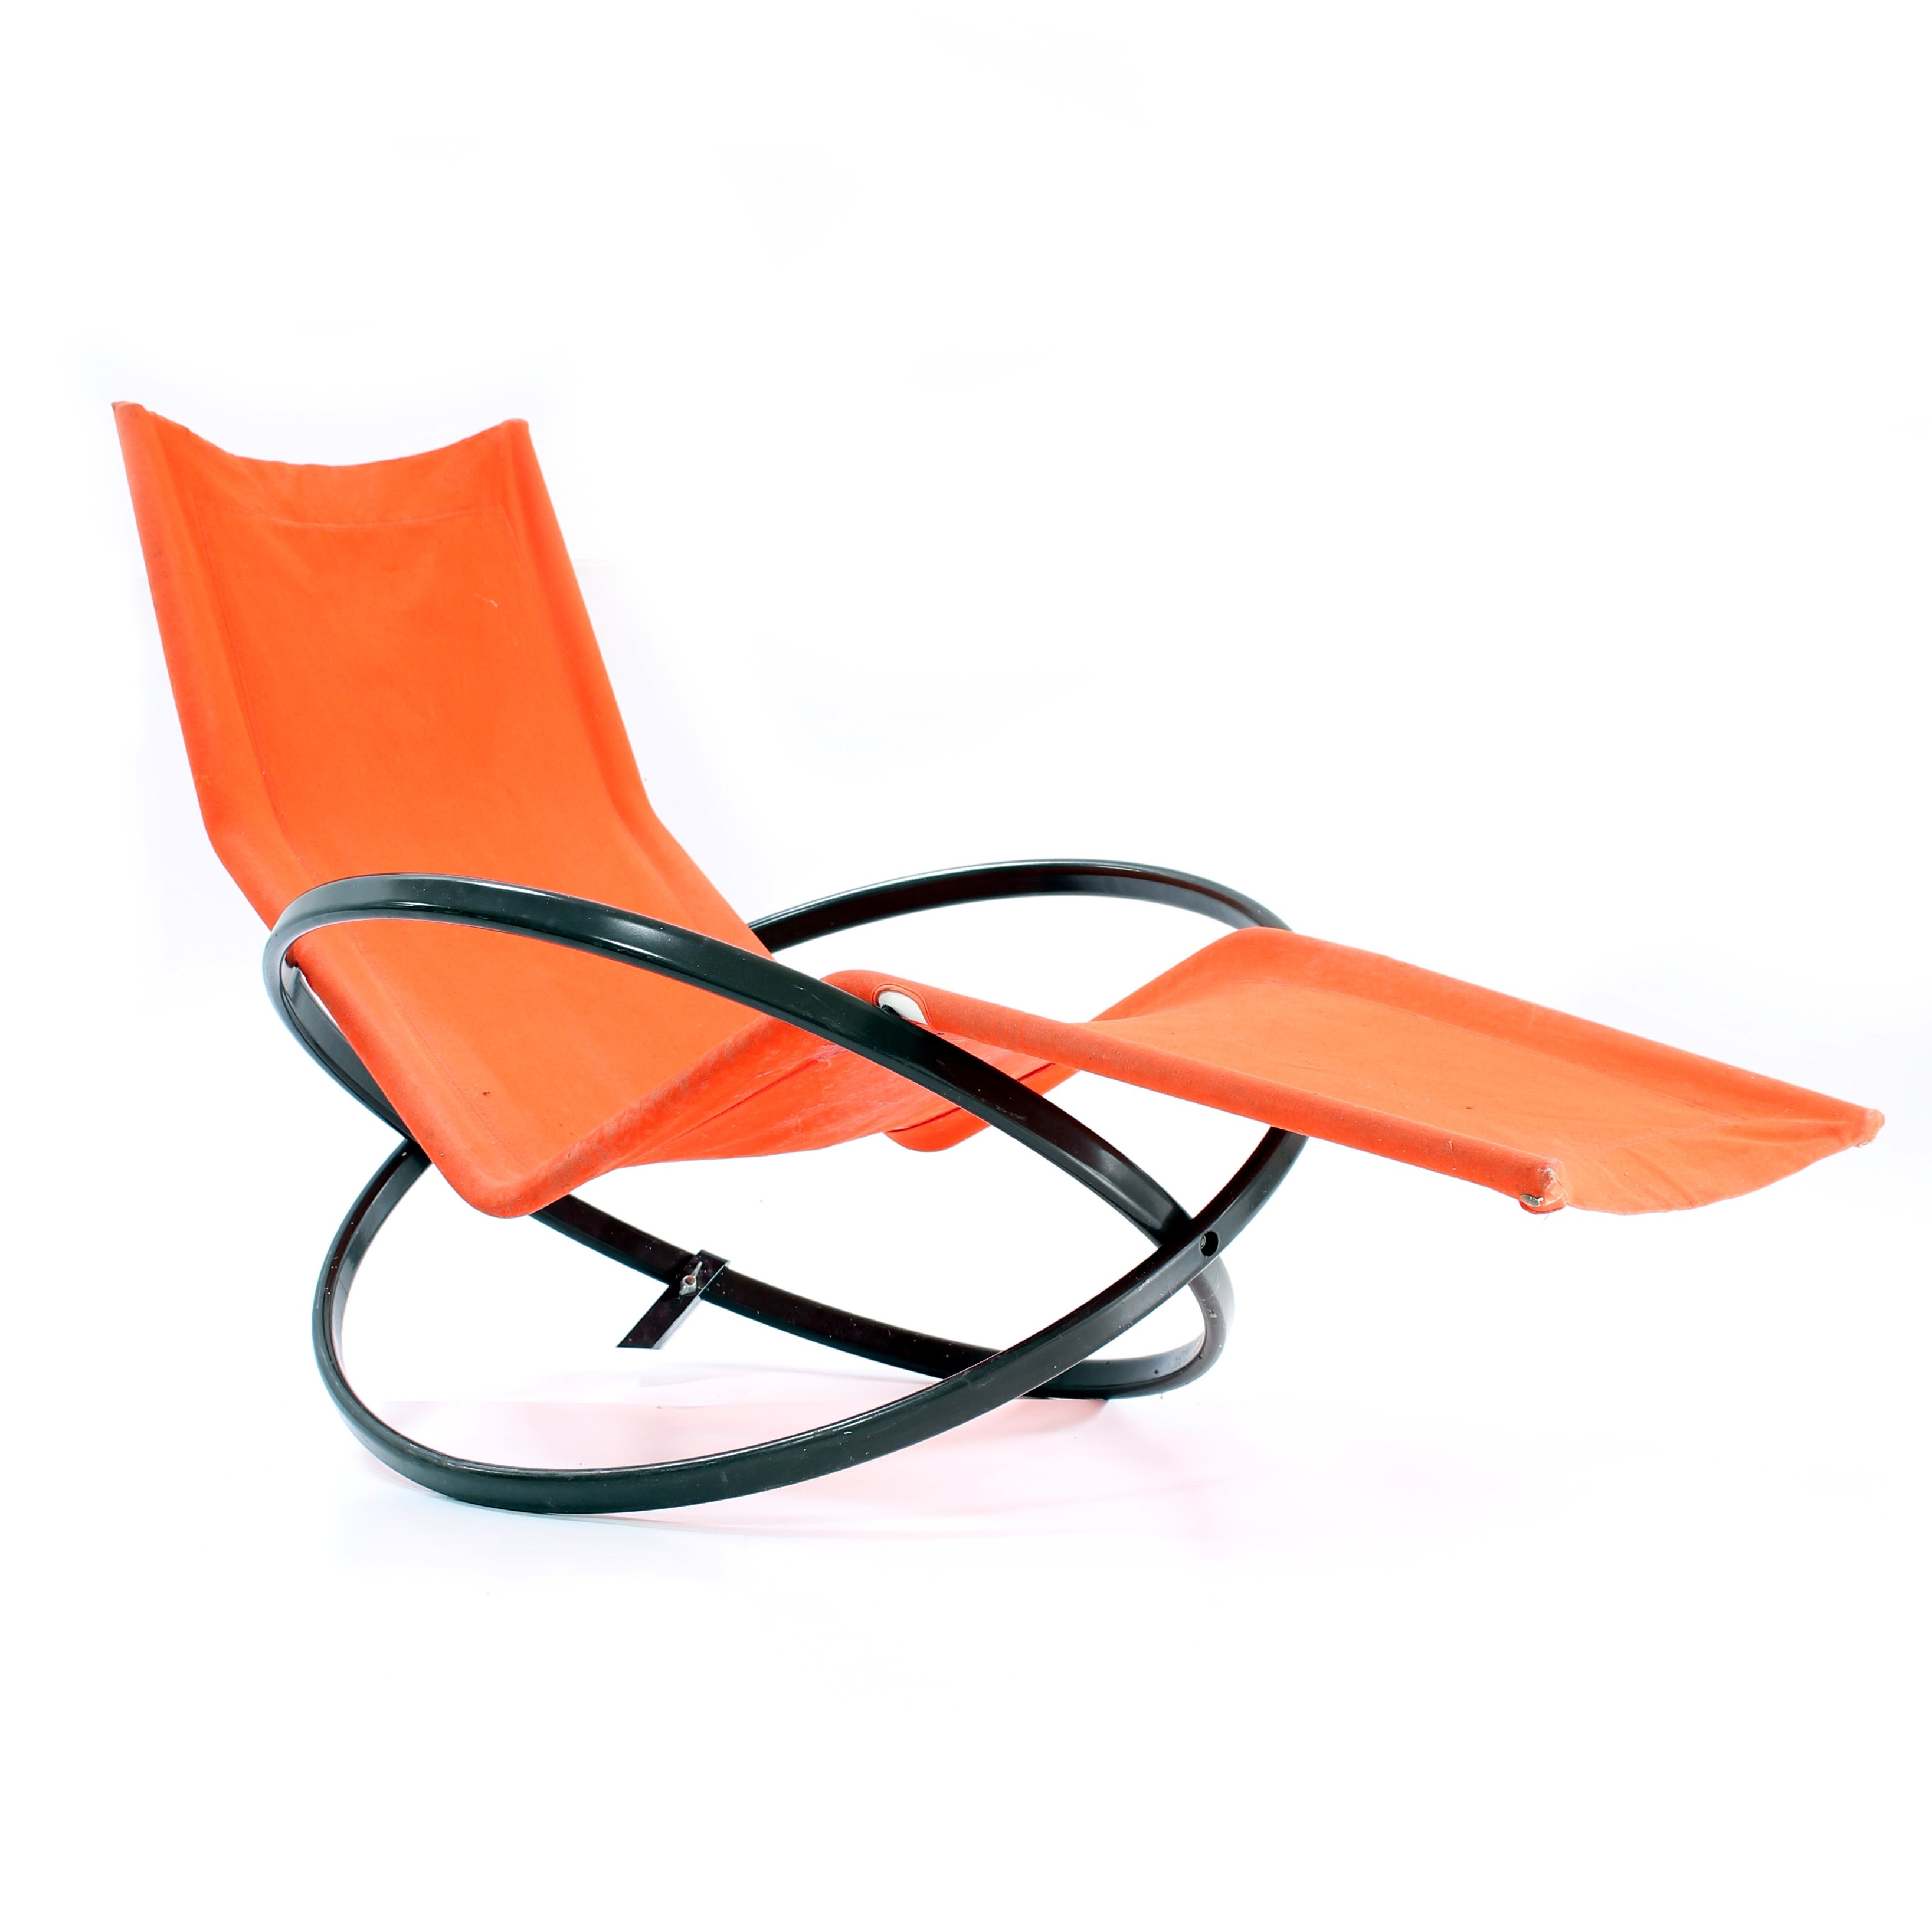 Jet Star rocking chair by Roger Lecal 1970s